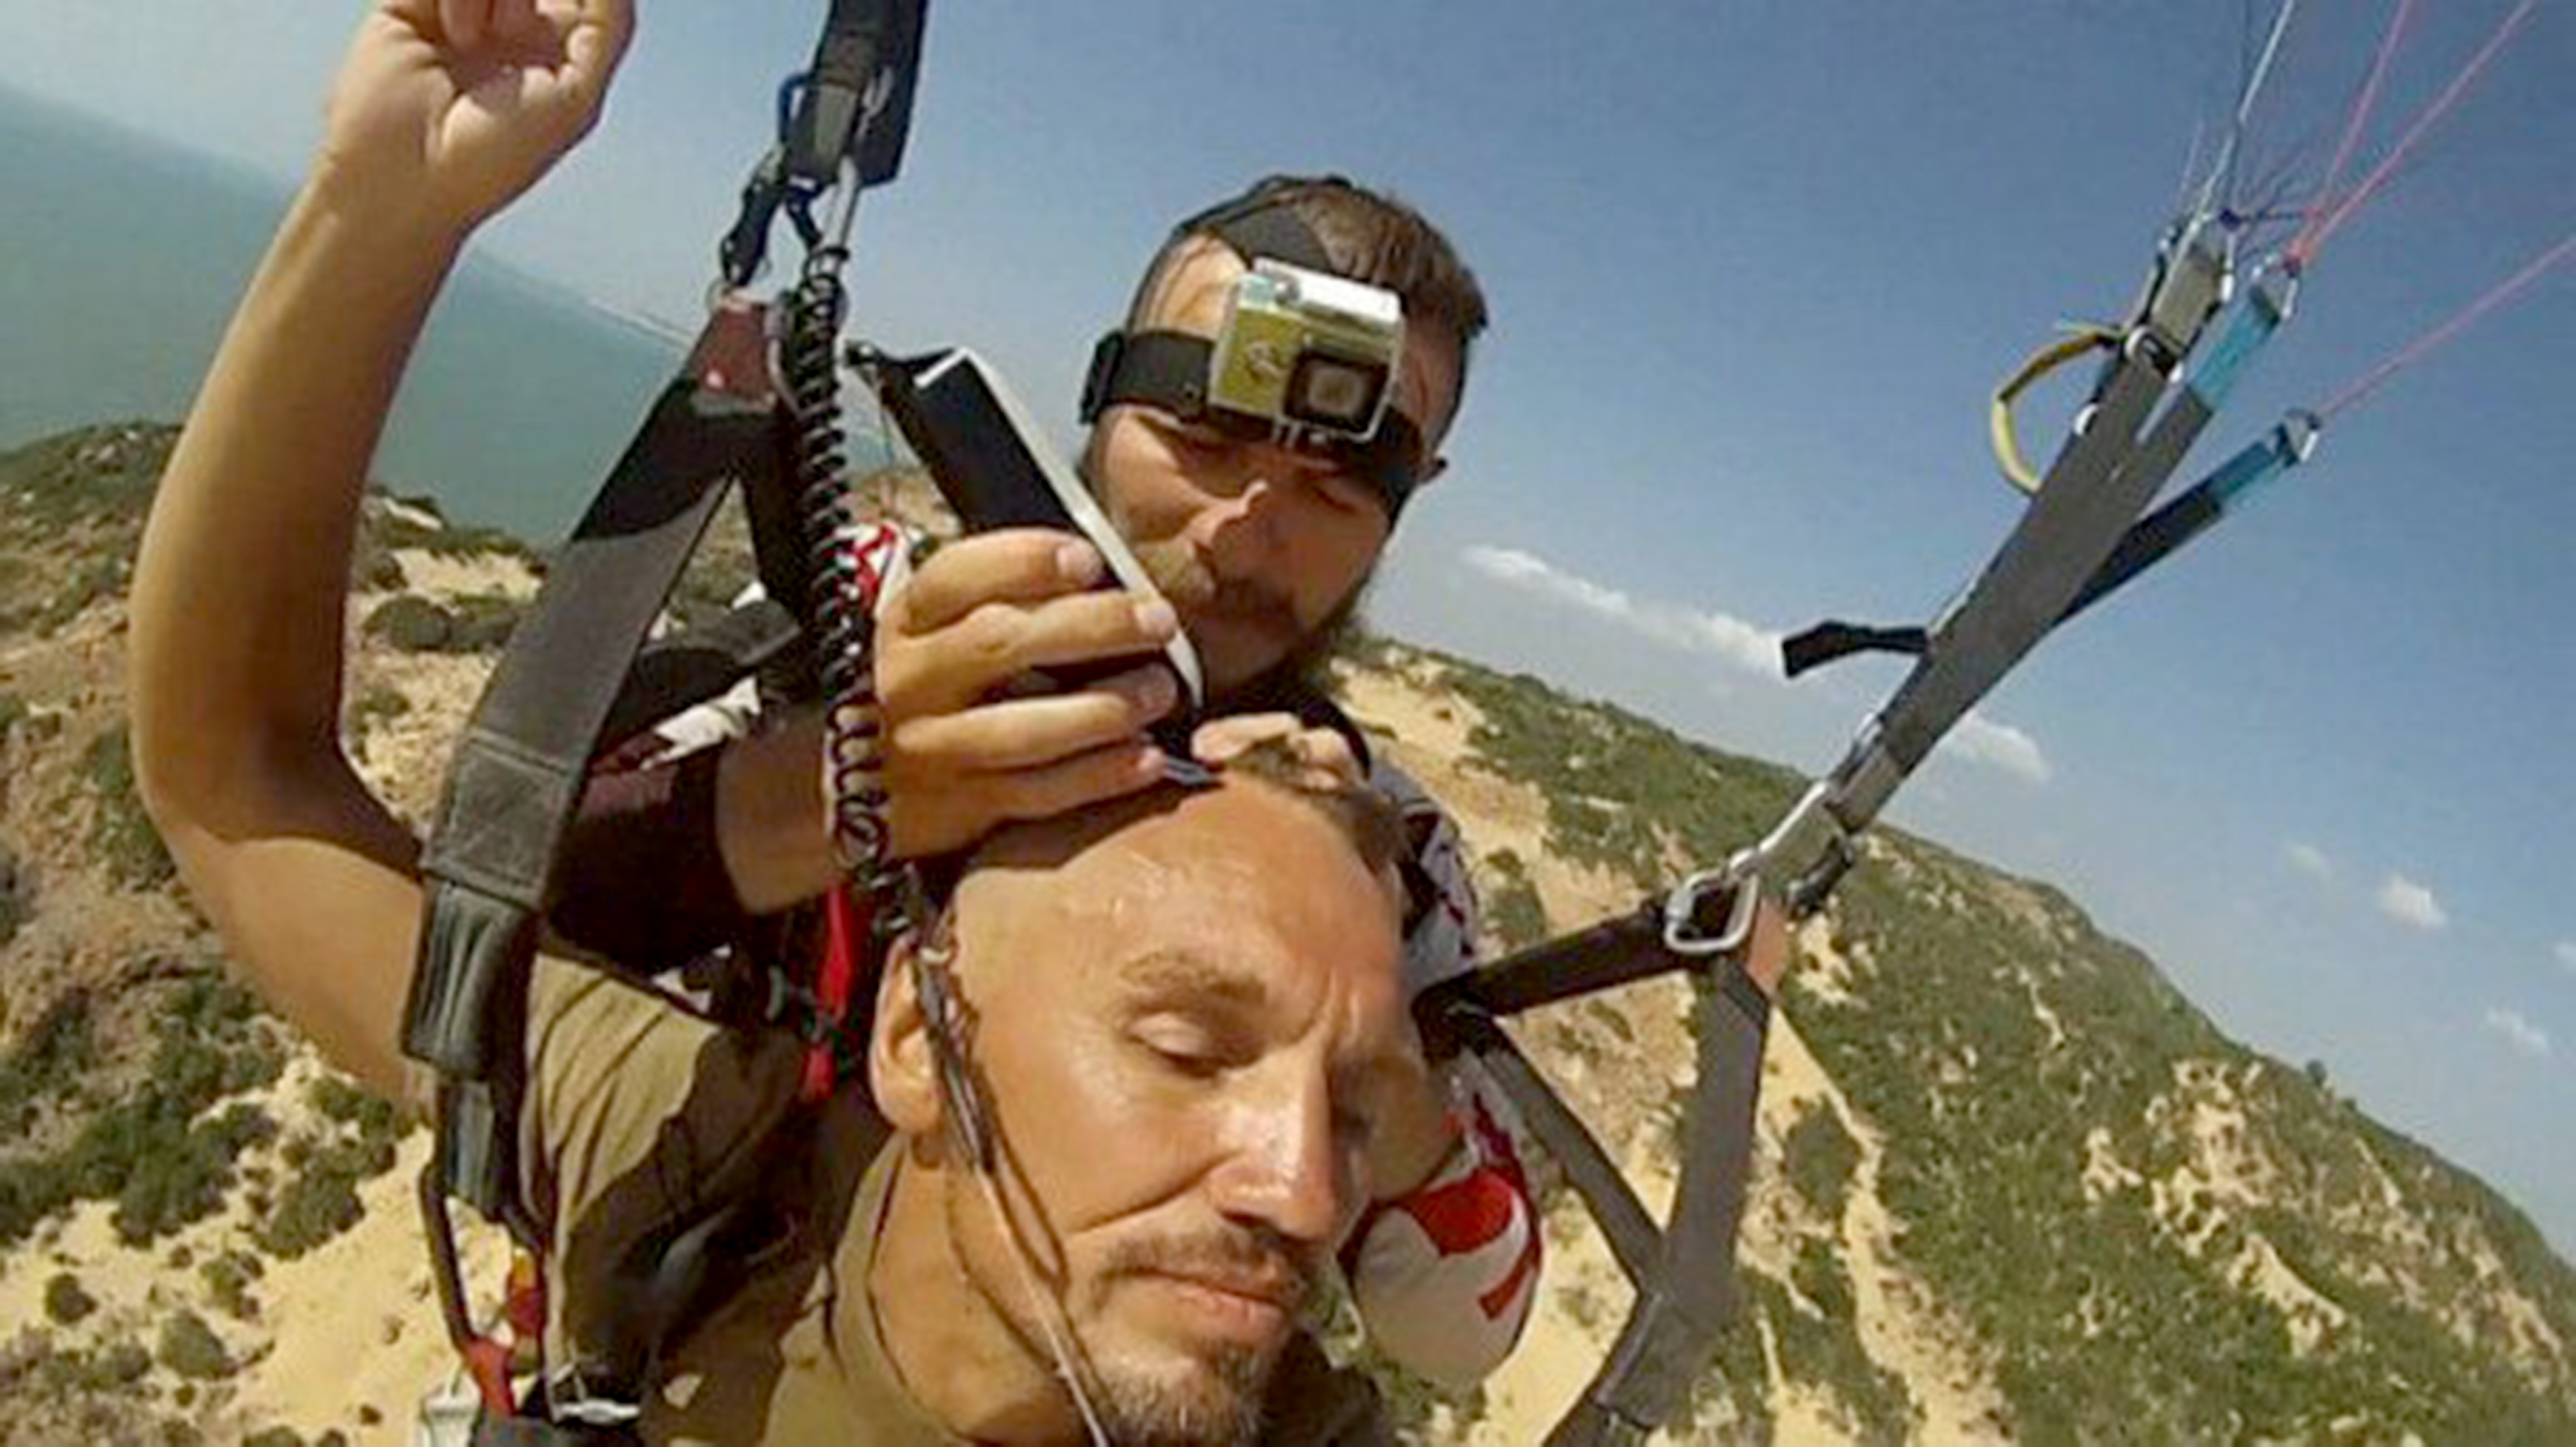 Cutting hair whilst paragliding